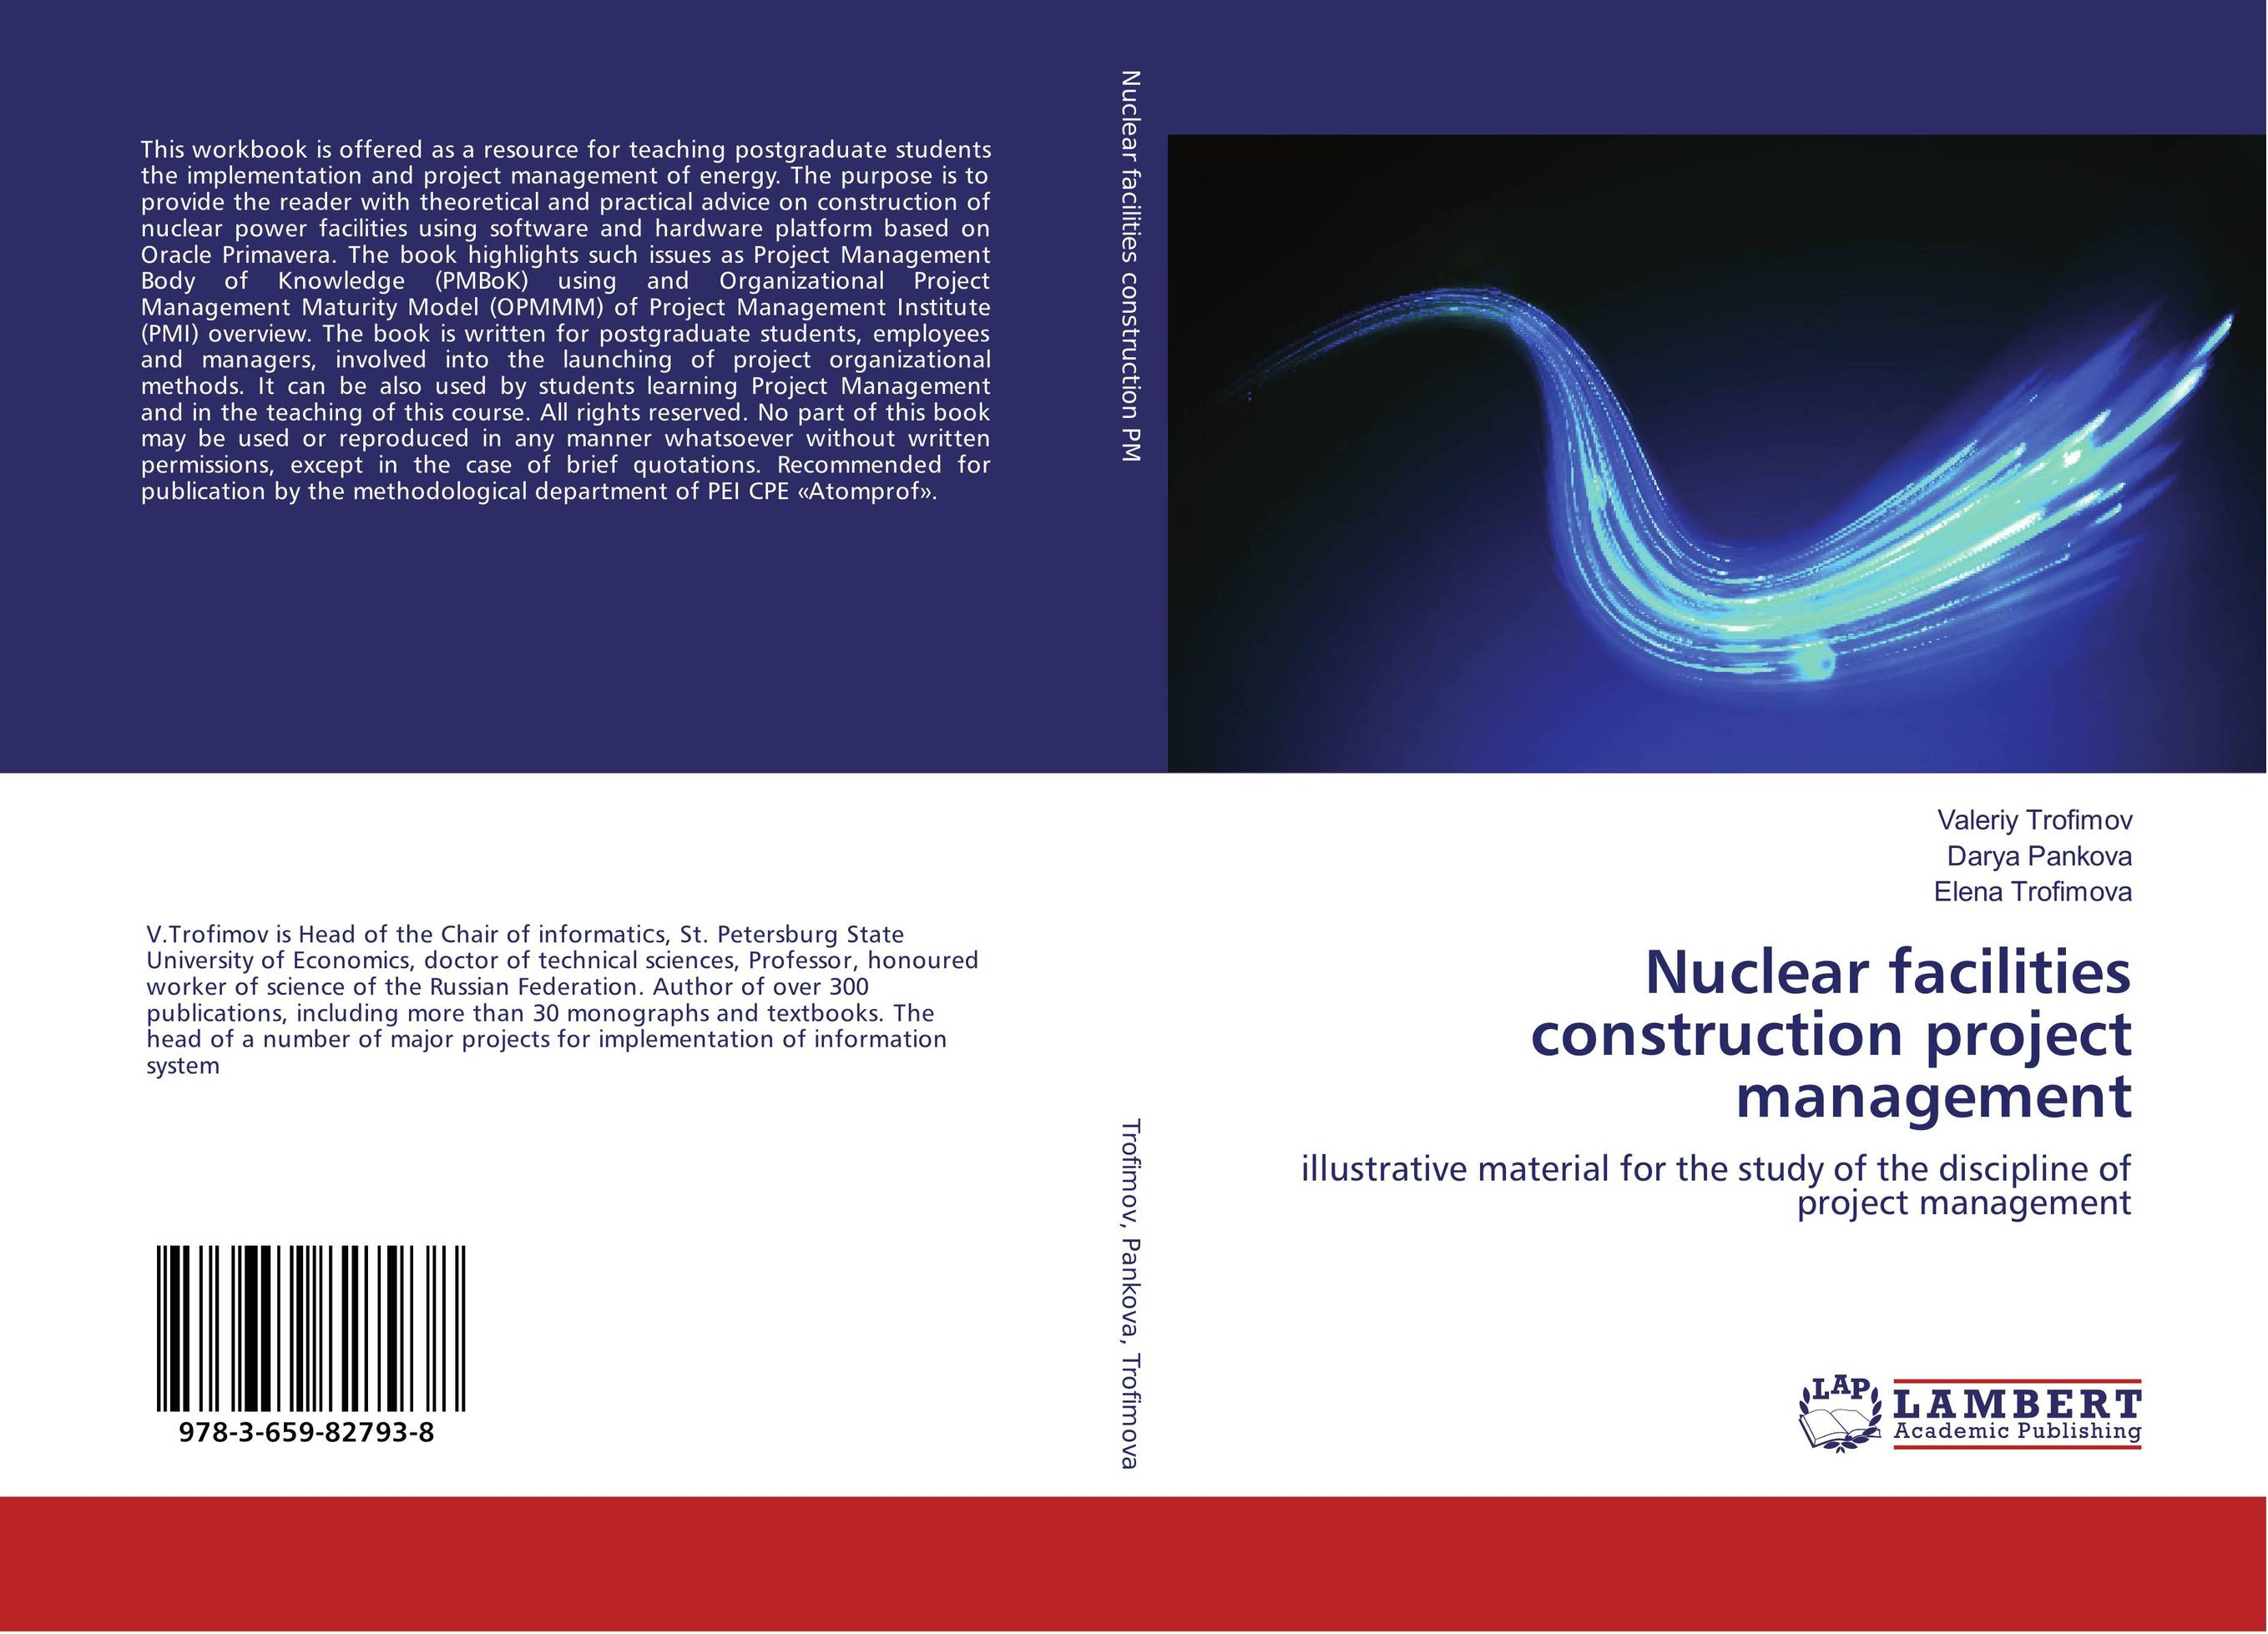 Nuclear facilities construction project management